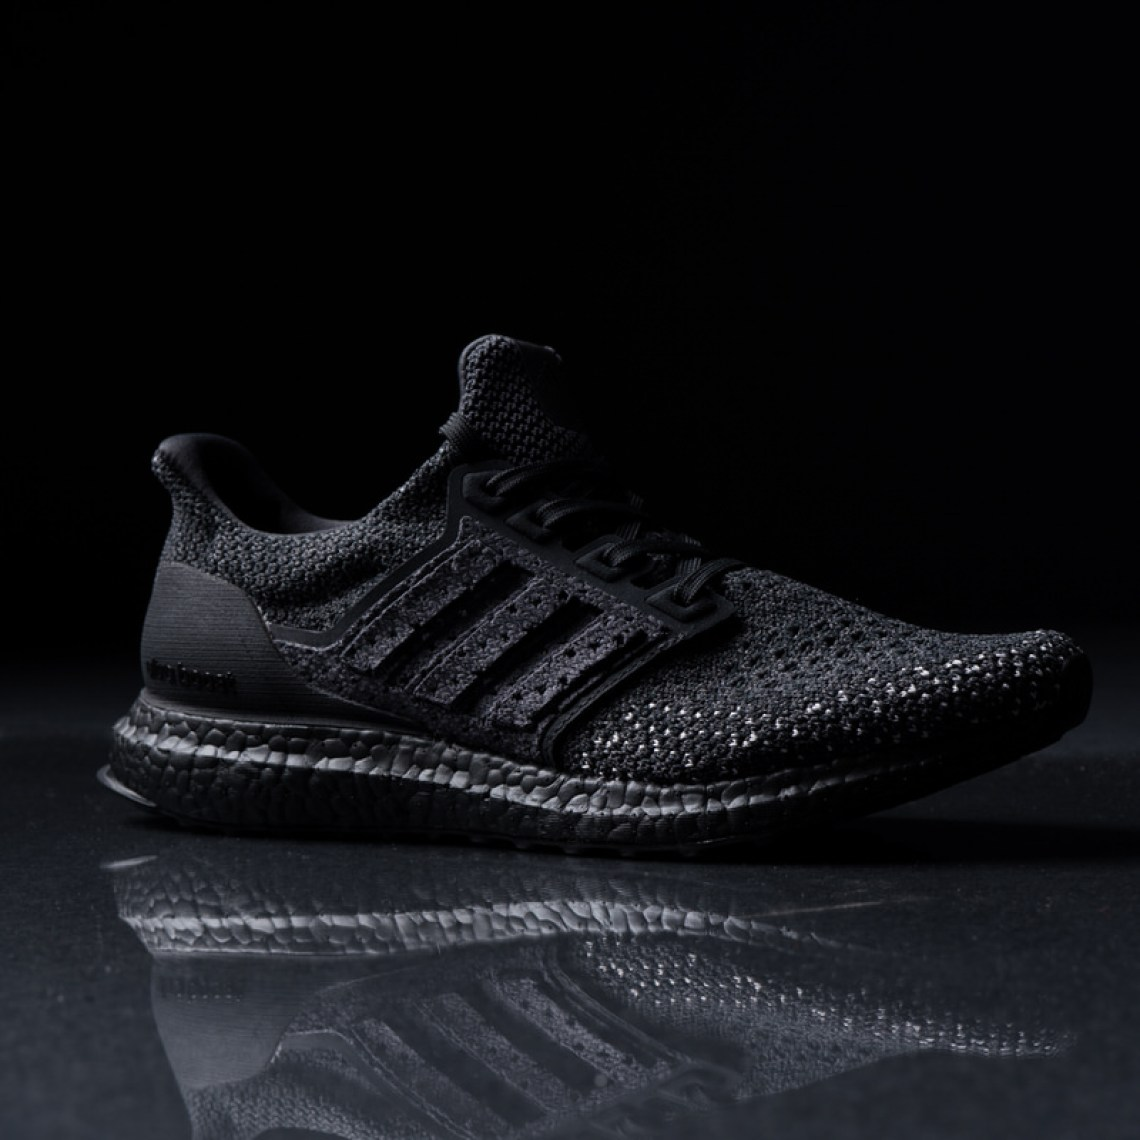 aed9169acf233 adidas Ultra Boost Clima